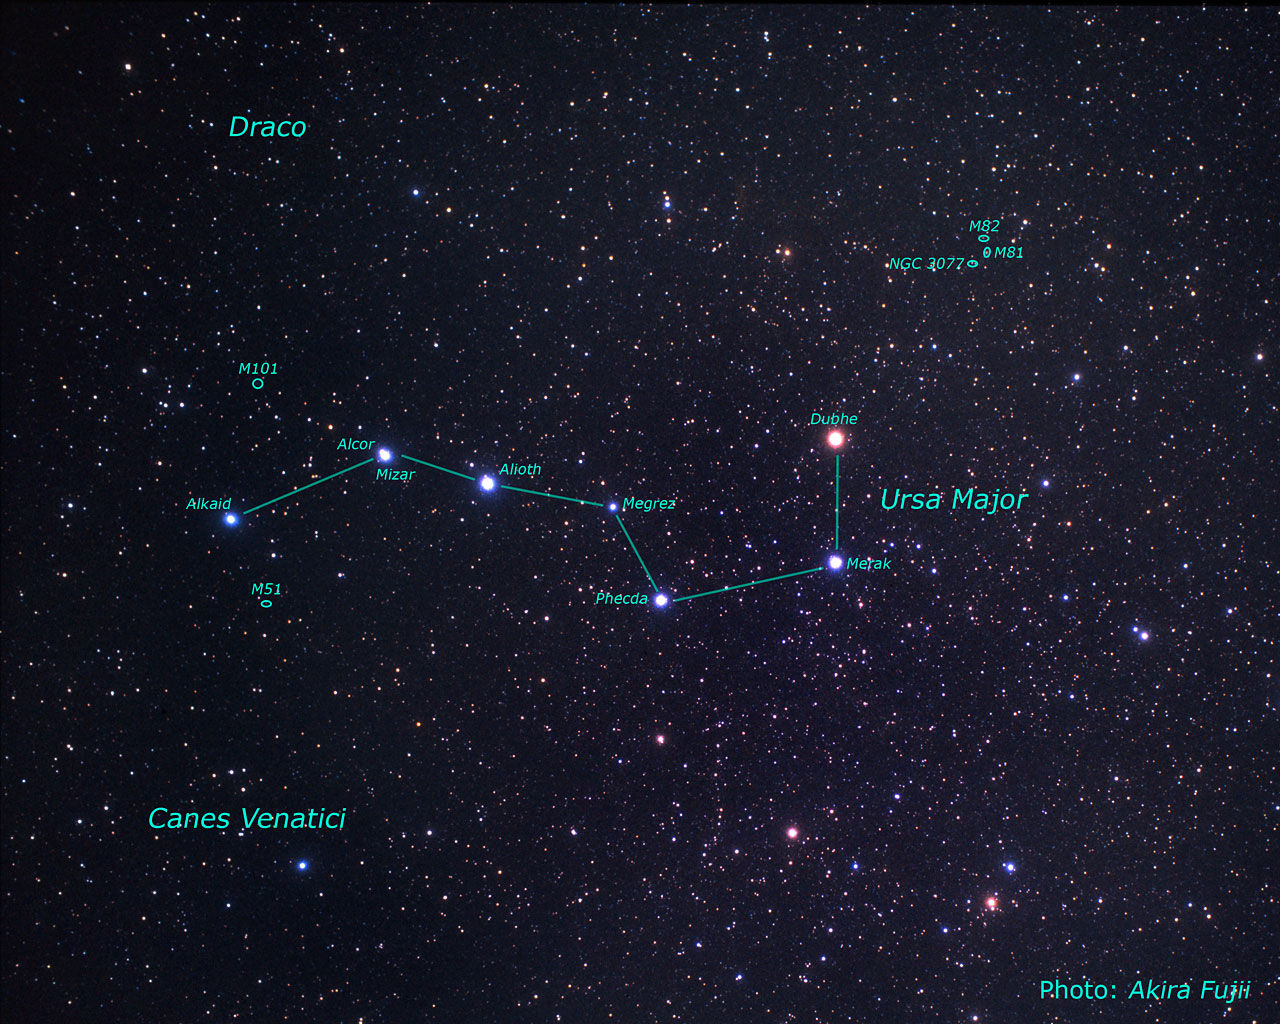 Location of the M81/M82 galaxy group on the sky (ground-based image)